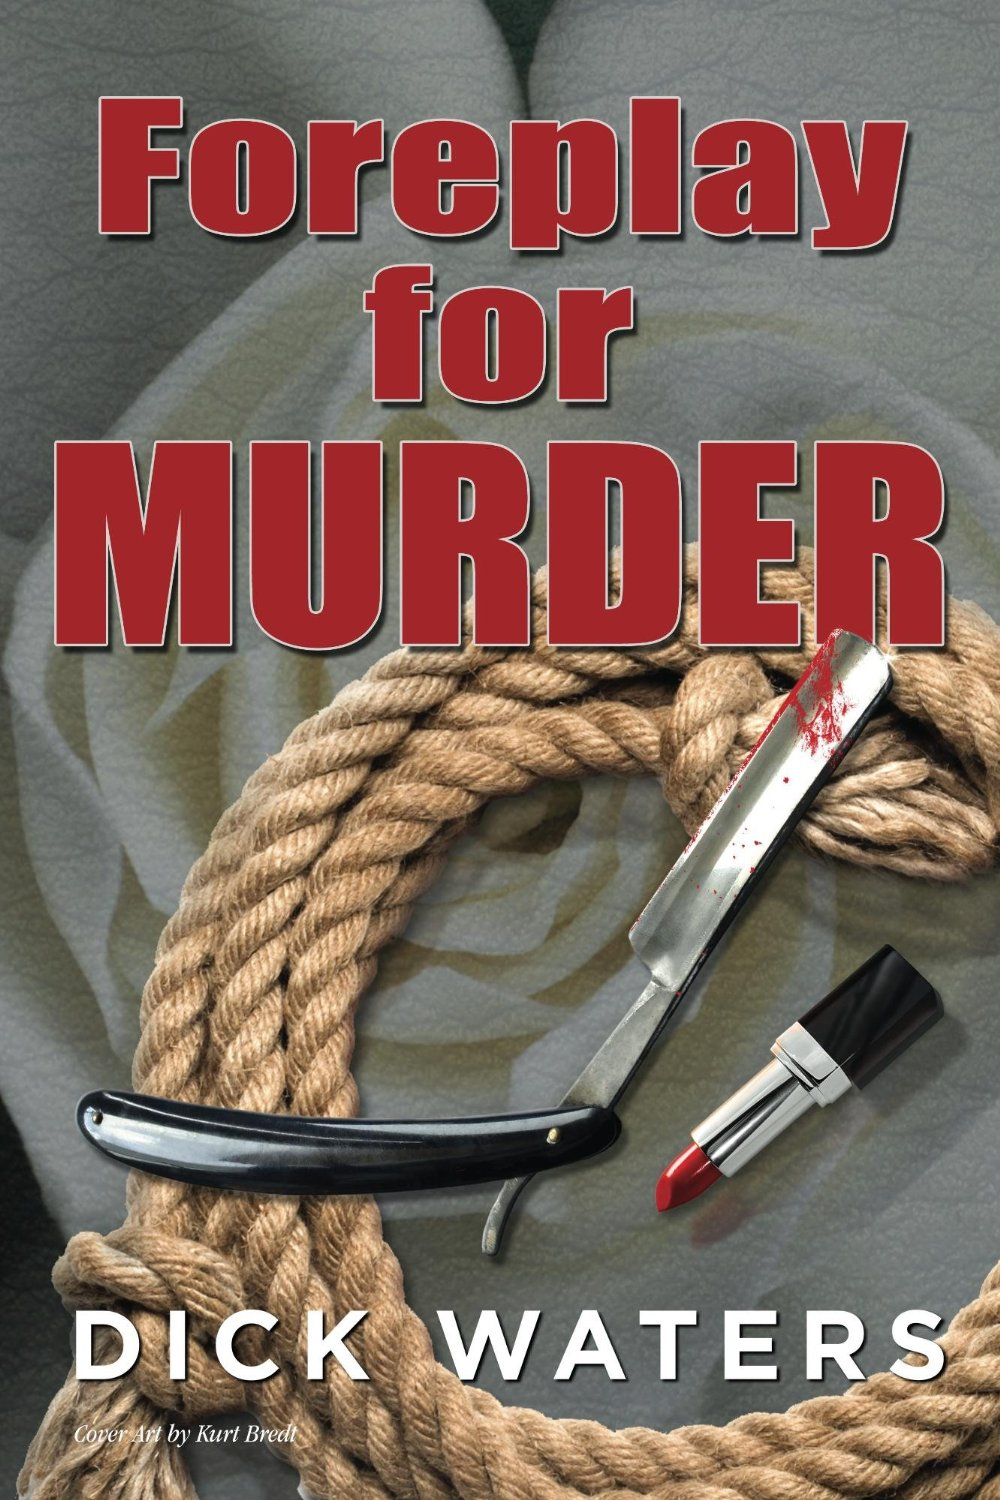 Foreplay for Murder